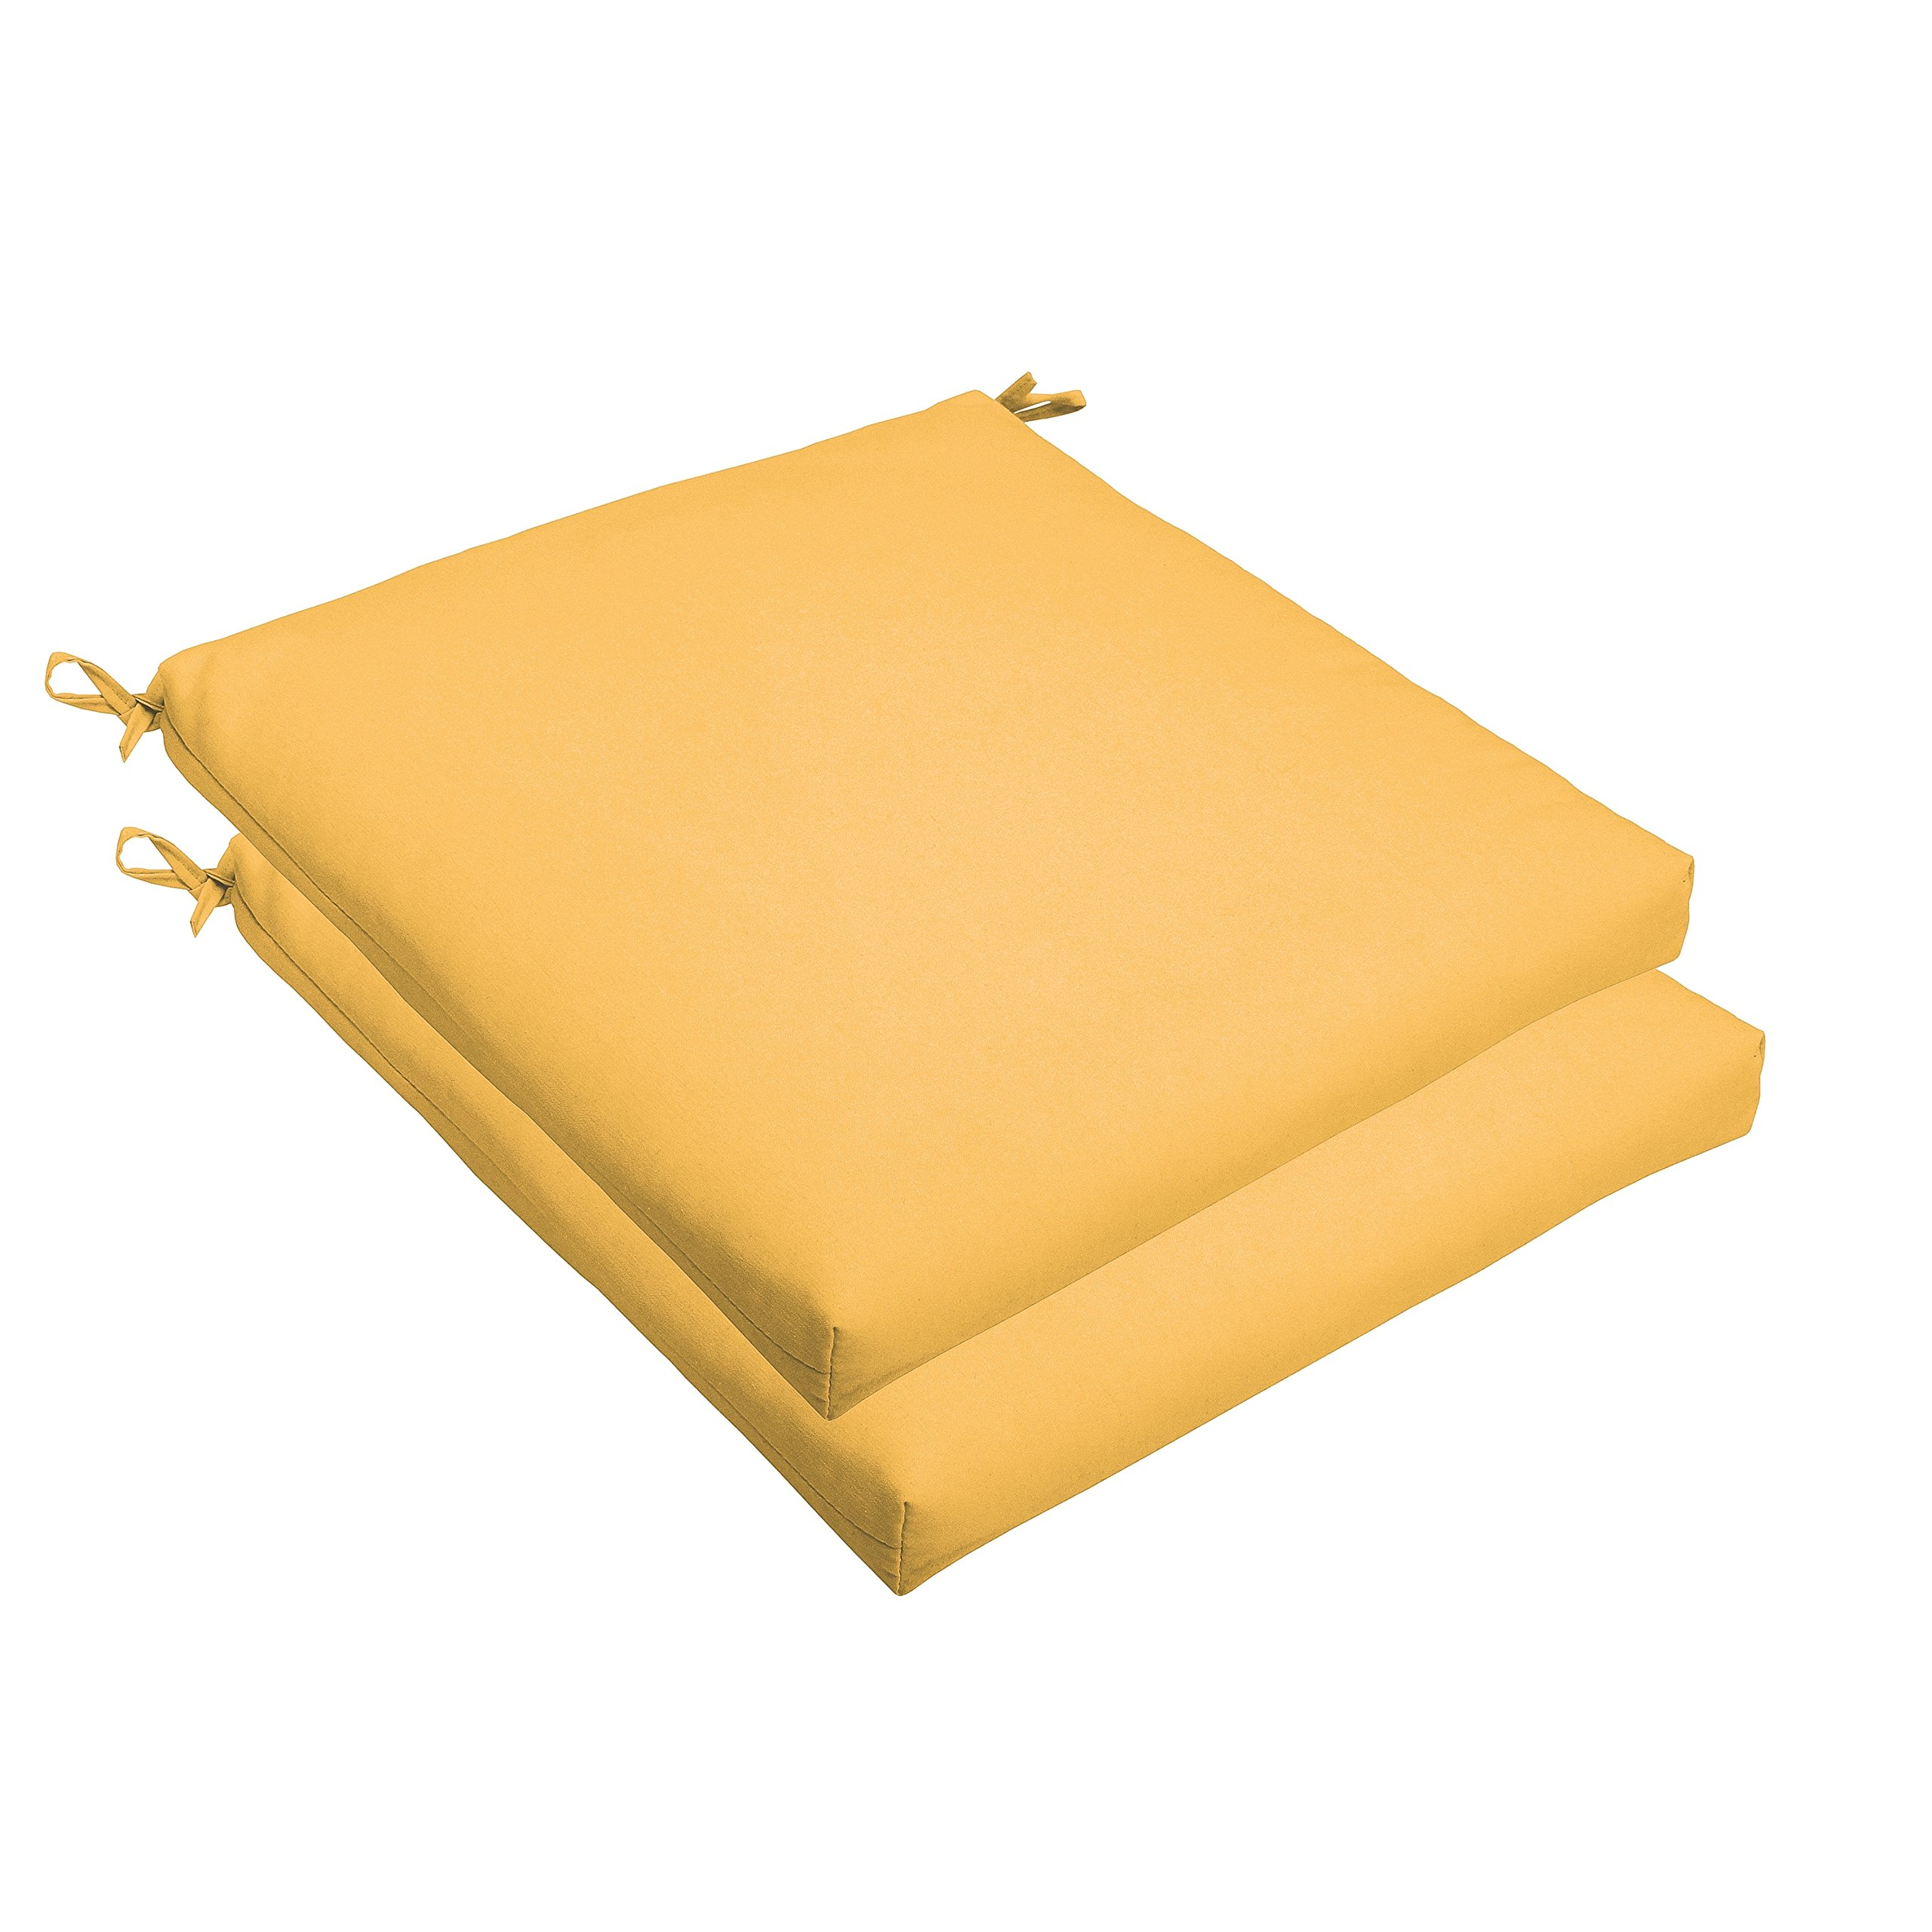 Mozaic AMCS105490 Indoor or Outdoor Sunbrella Square Chair Seat Cushions Set, Set of 2, 19 x 19 x 2.5, Sunflower Yellow